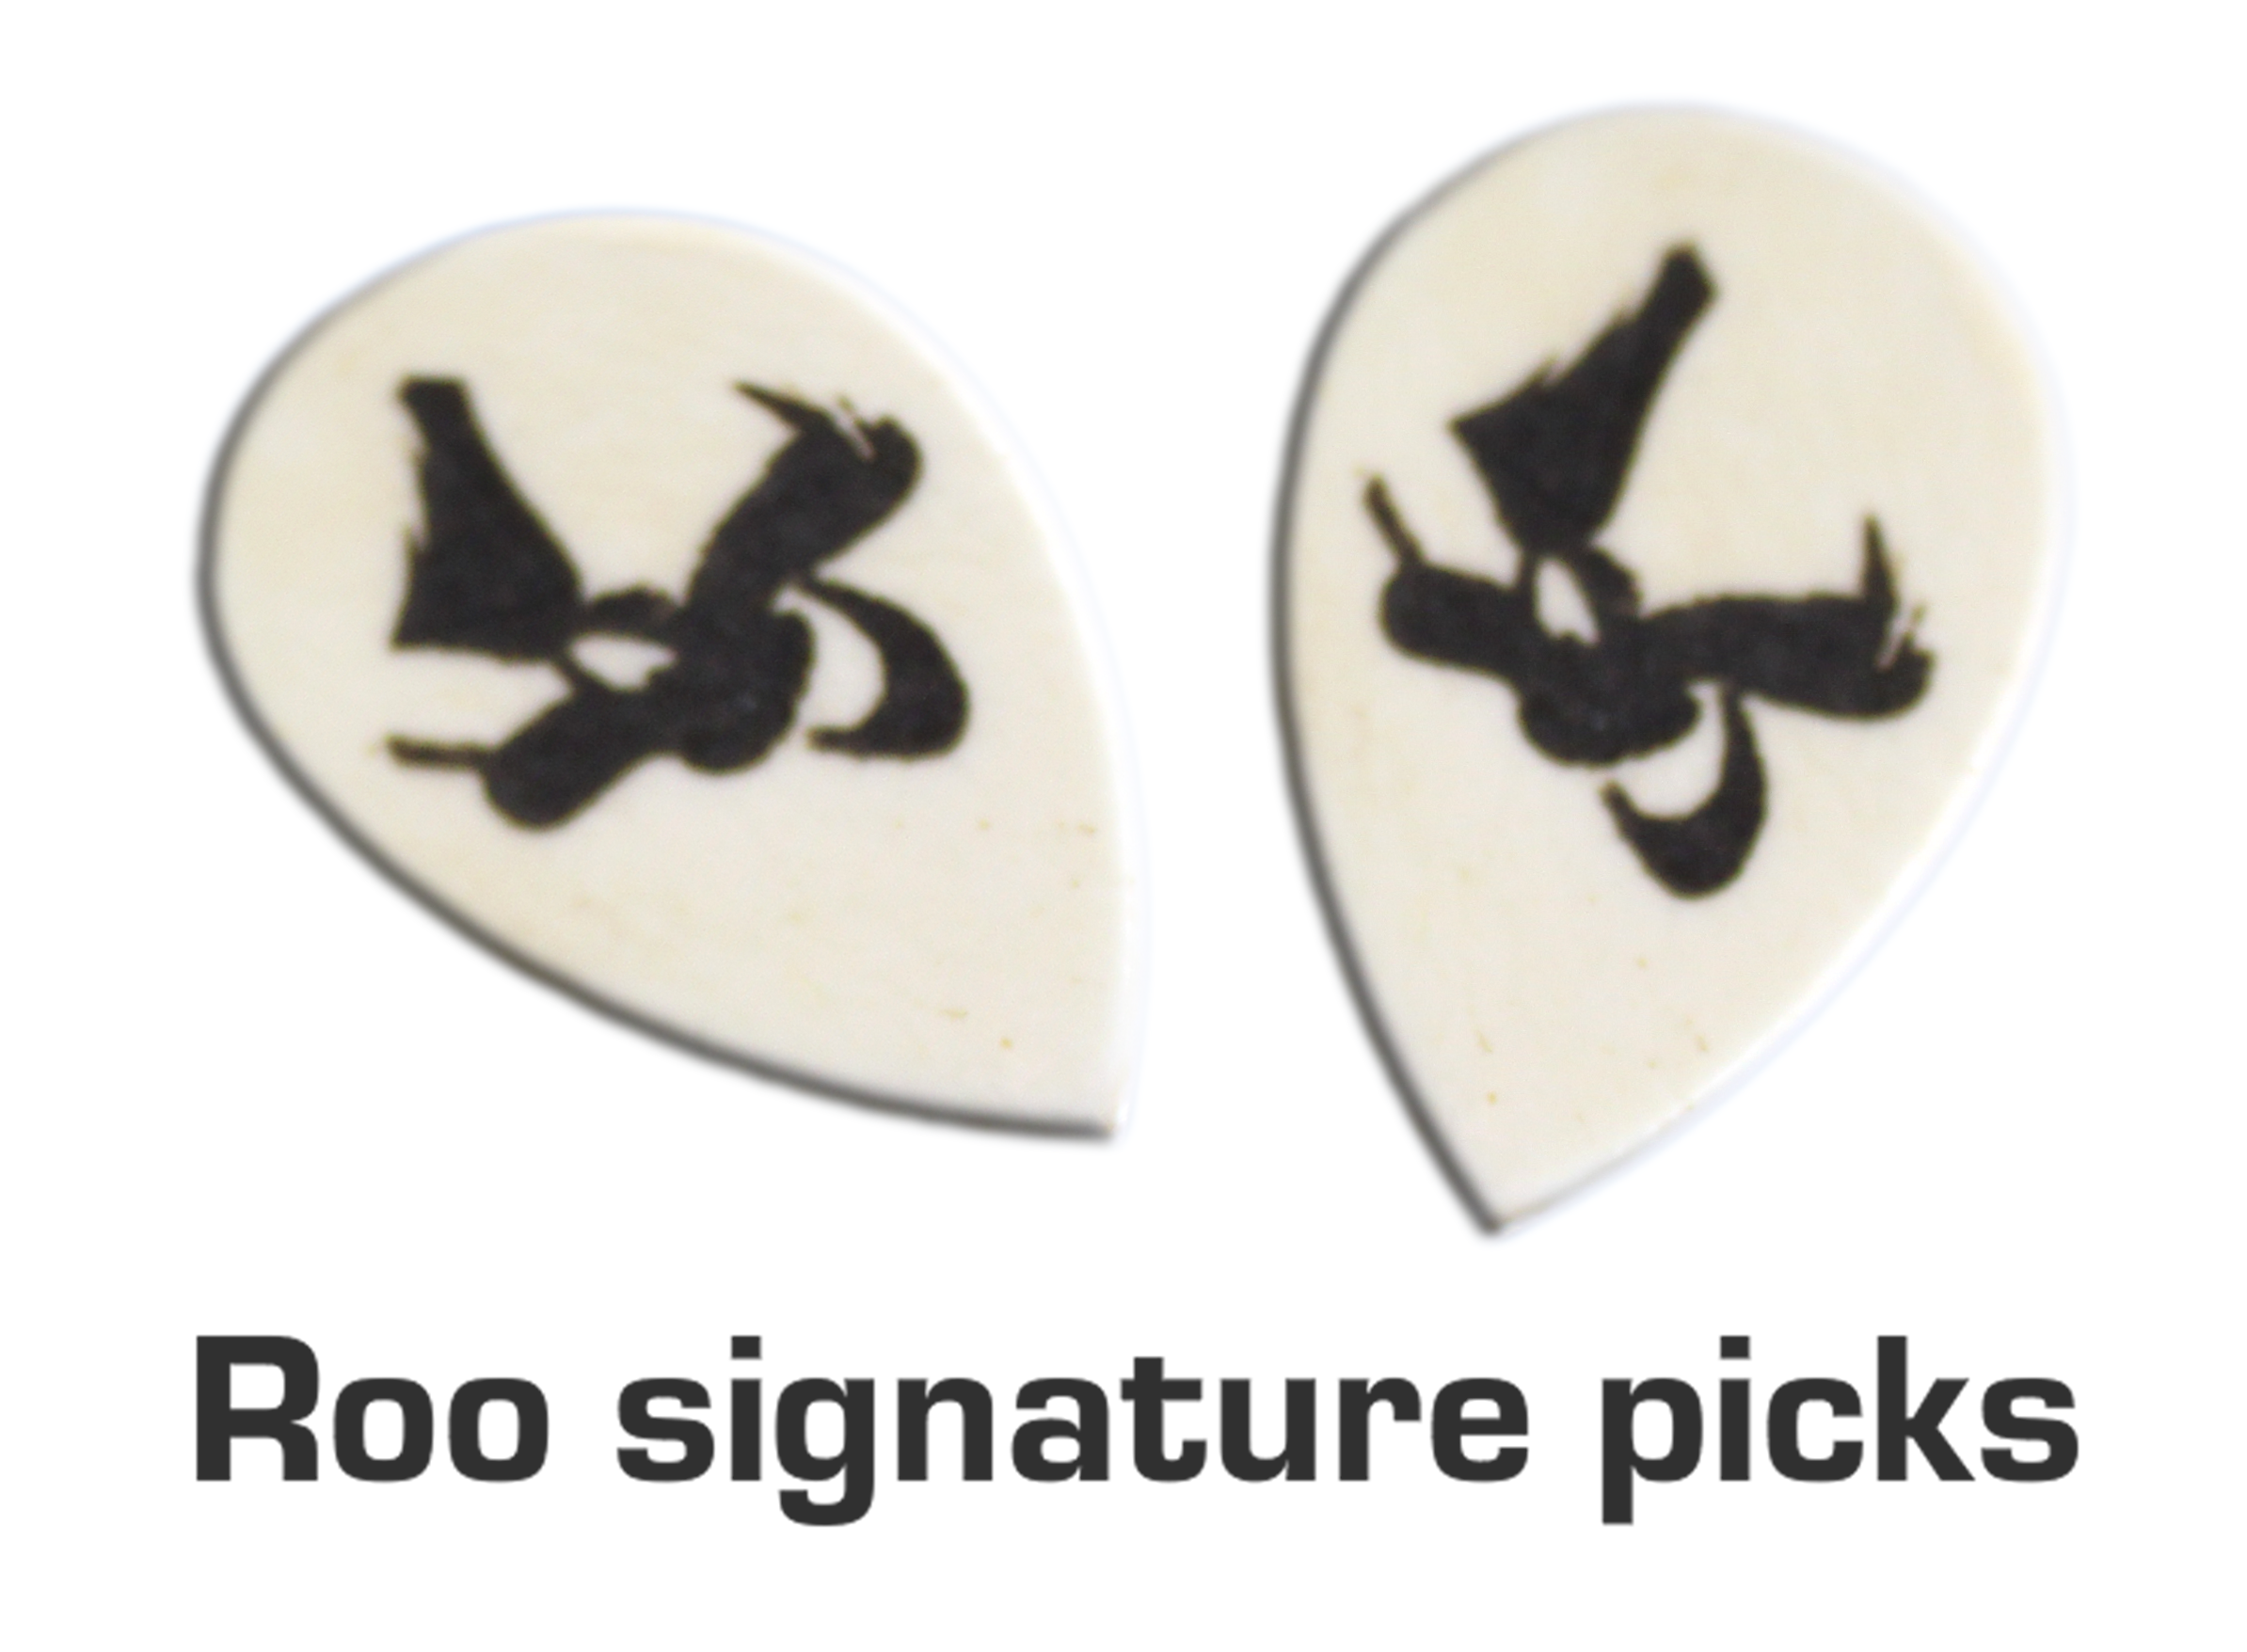 Roo picks